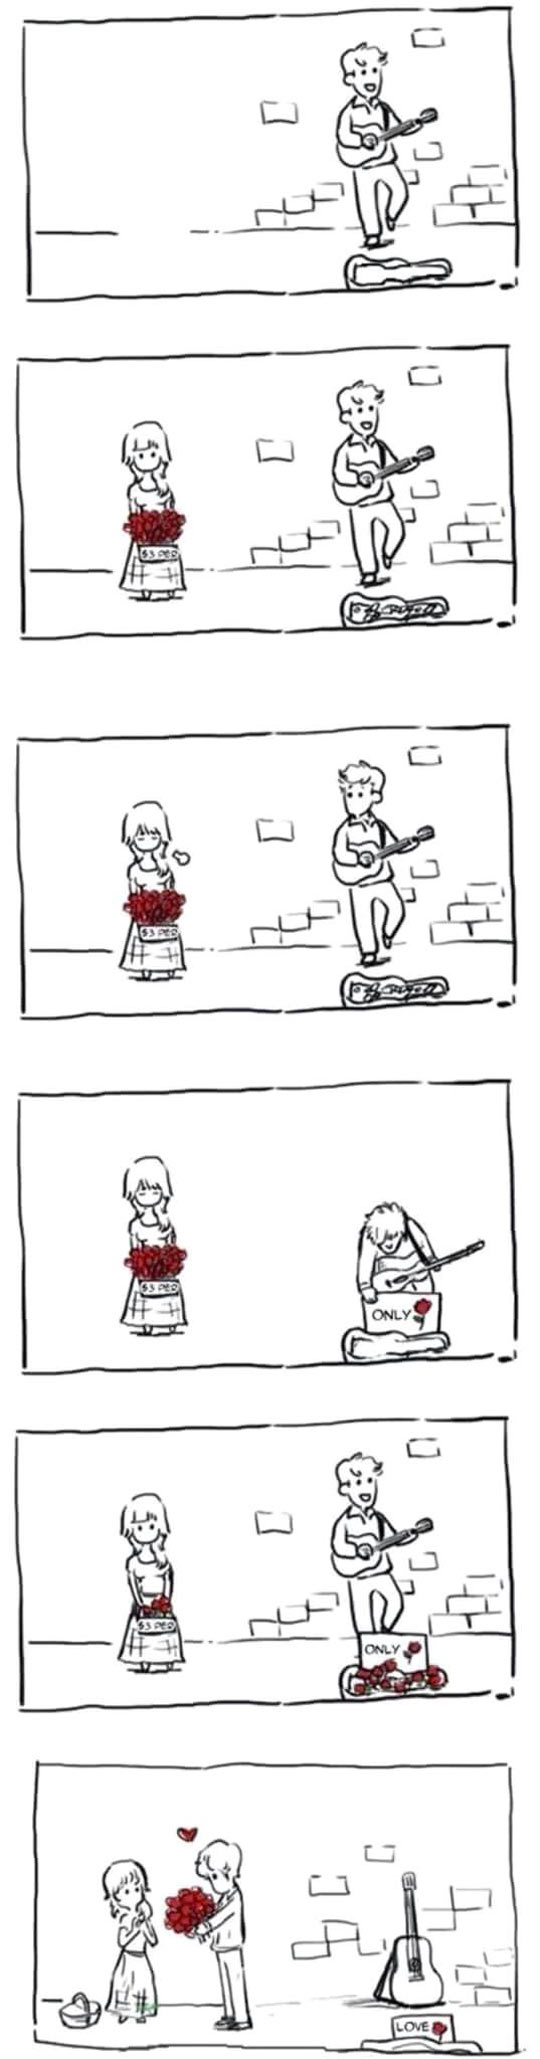 funny-roses-guitar-playing-street-comic